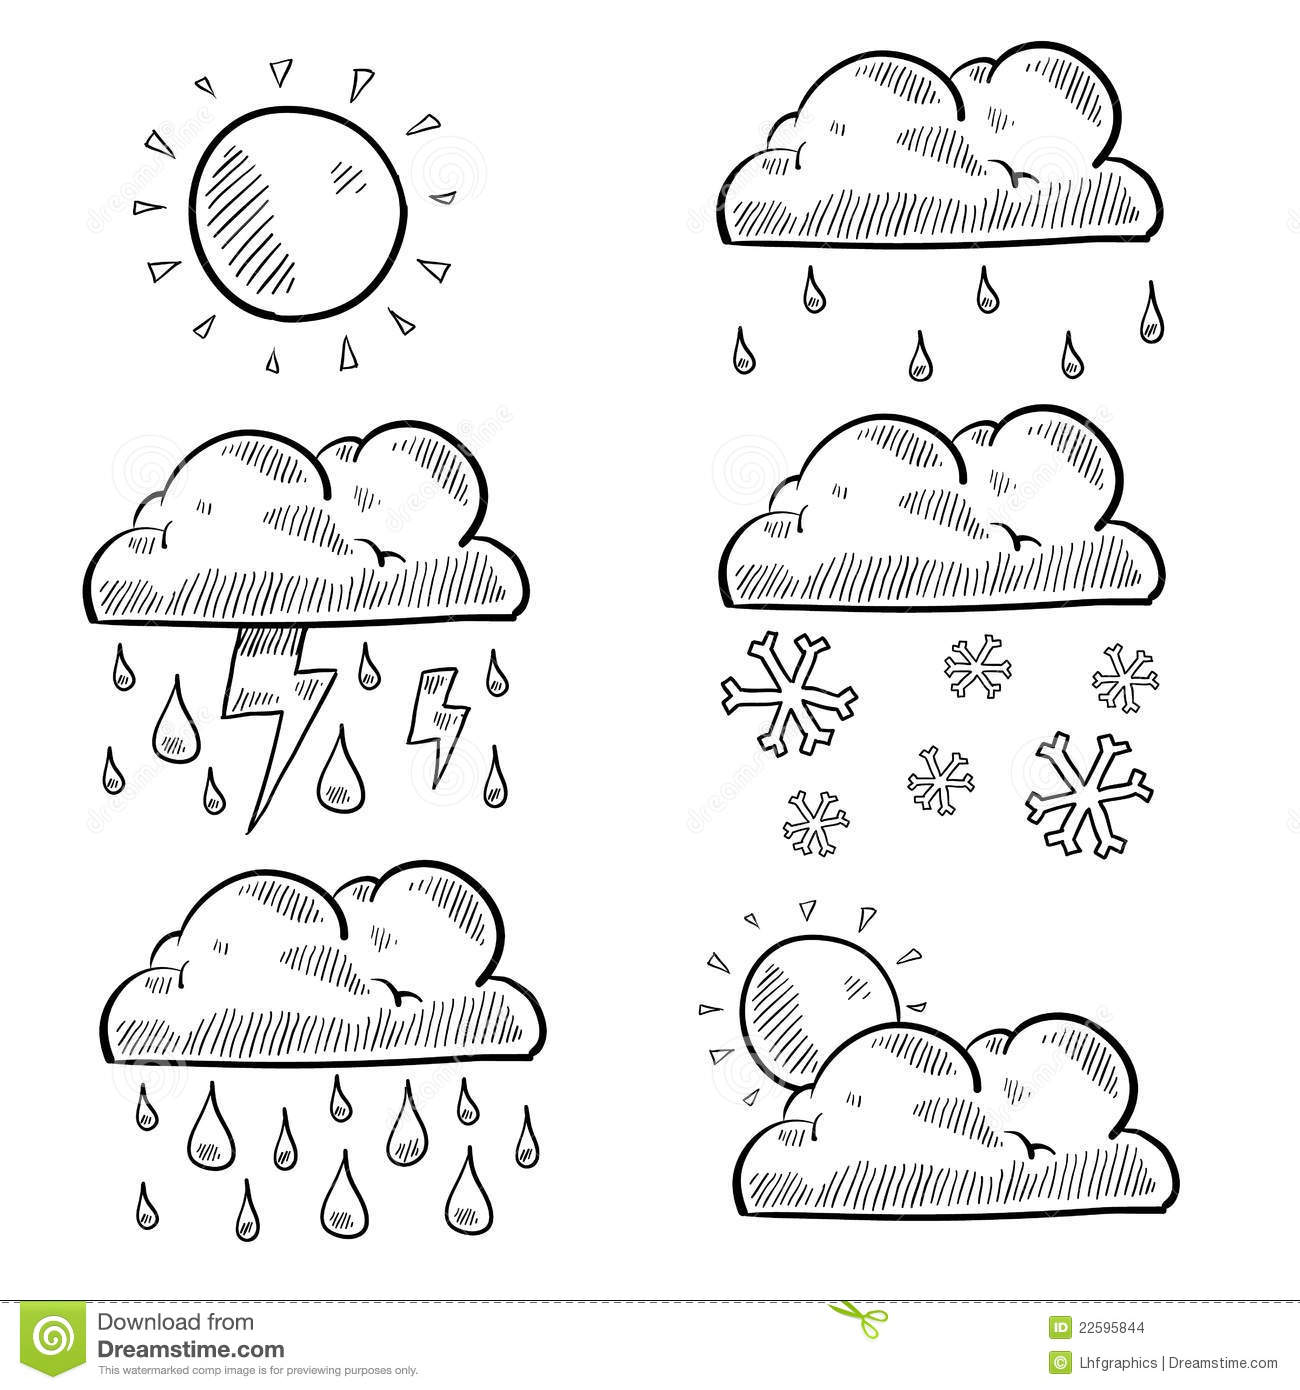 Water Off Cliparts as well Stock Illustration Case Earthquake Emergency Plan Icons Set Human Pictogram Representing Action Preparedness Image48834877 additionally Bmw R26 Sport Year 1956 besides Stock Images Clouds Weather Sketch Image22595844 moreover Yoda MAGZ UK. on car clip art illustration